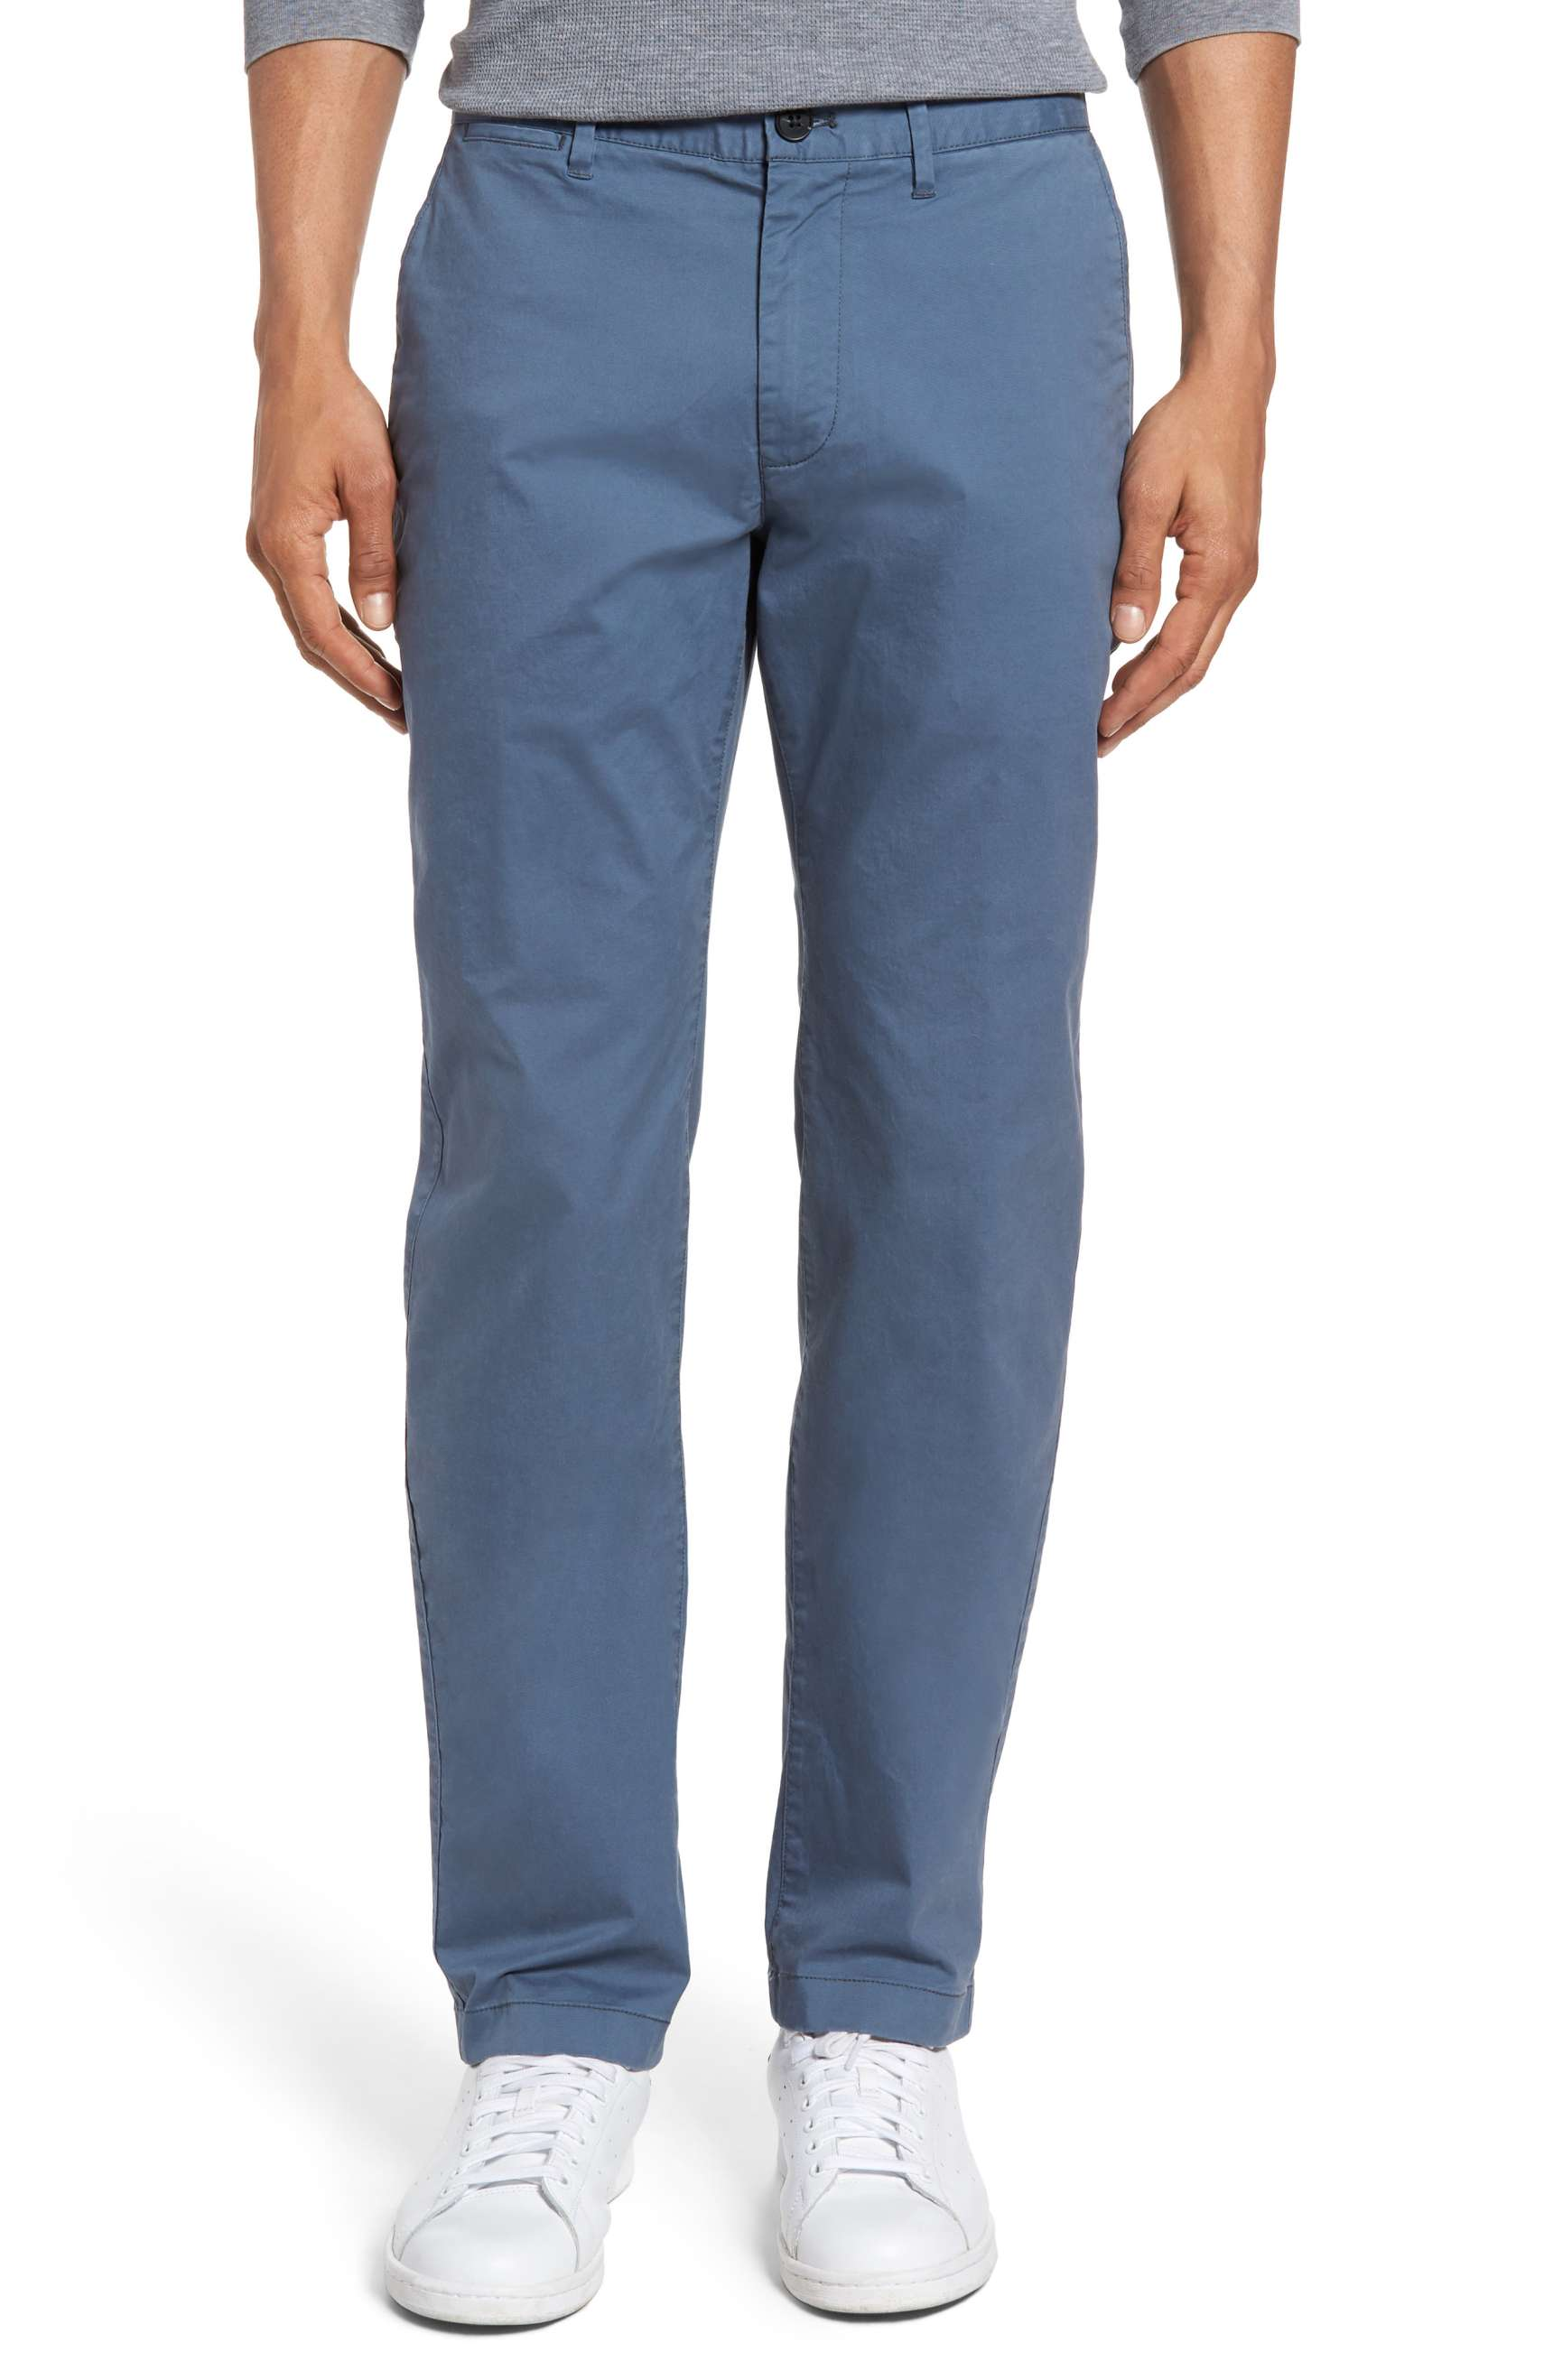 Blue Mens Trousers light-weight slim fit chino pants for men in grey-blue - buy it here for $98 ADVNVIX